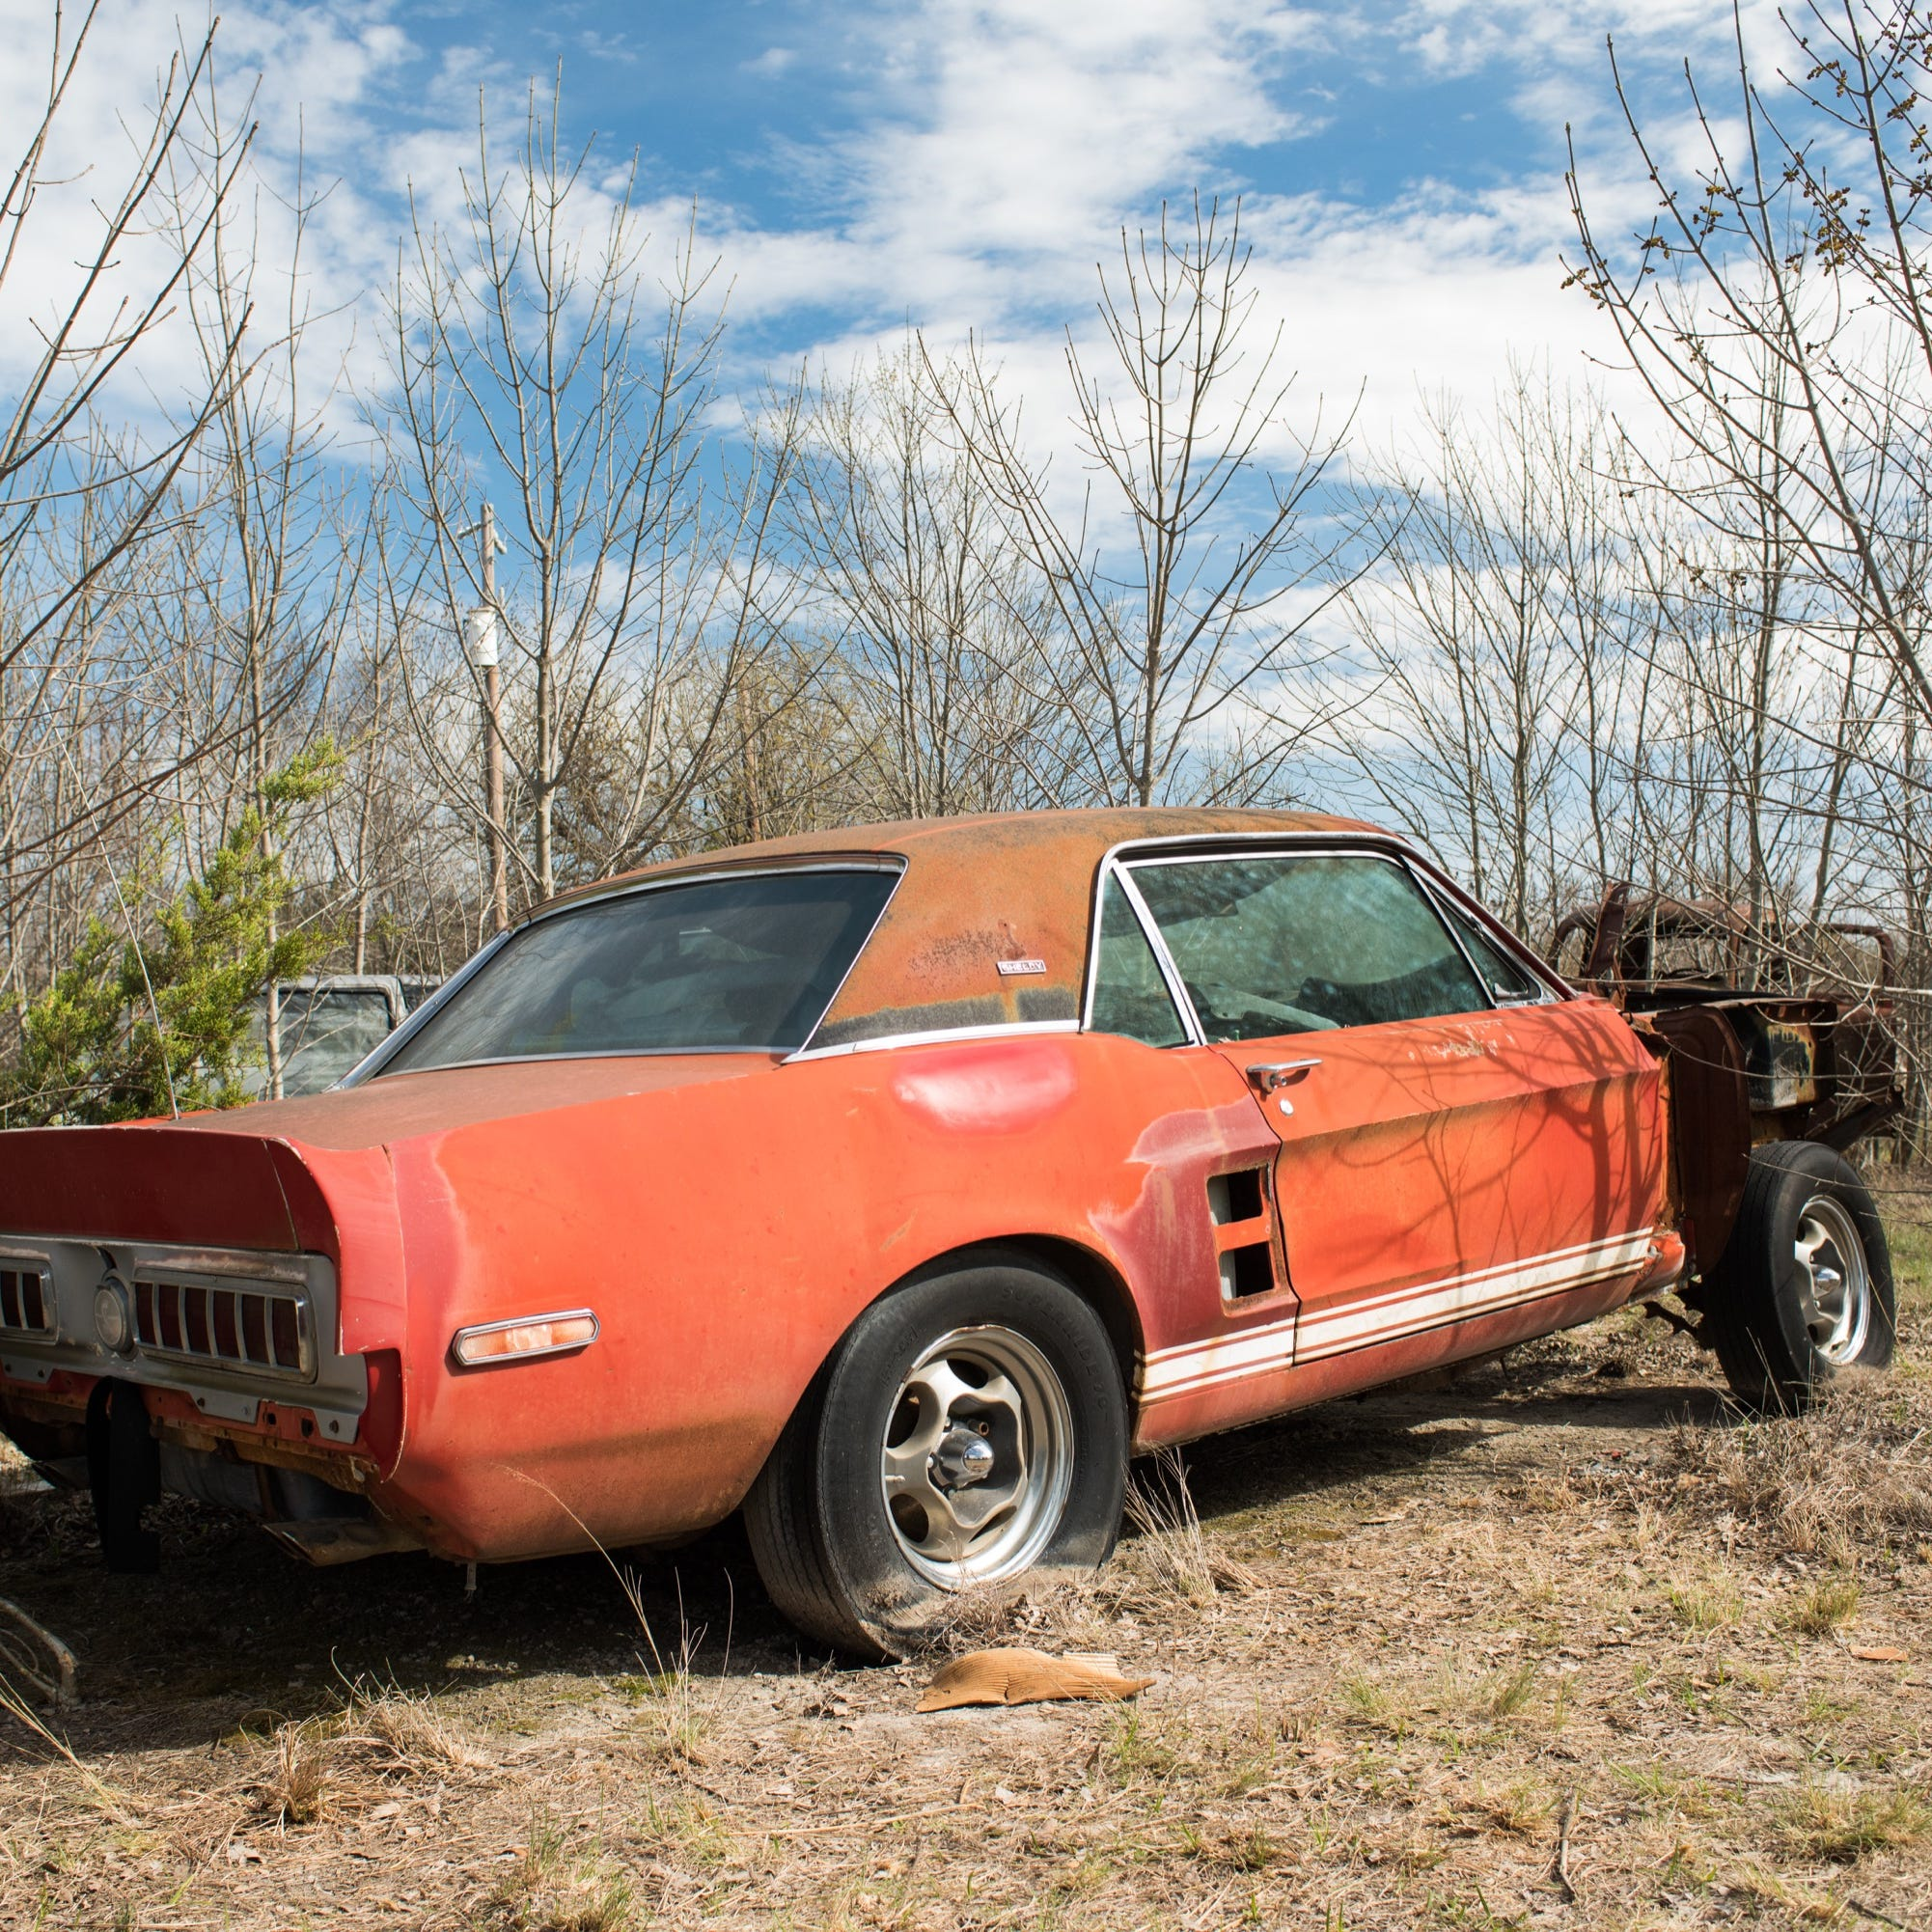 Near-mythical 1st Mustang Shelby GT 500 found; Experts crowd-sourcing its history